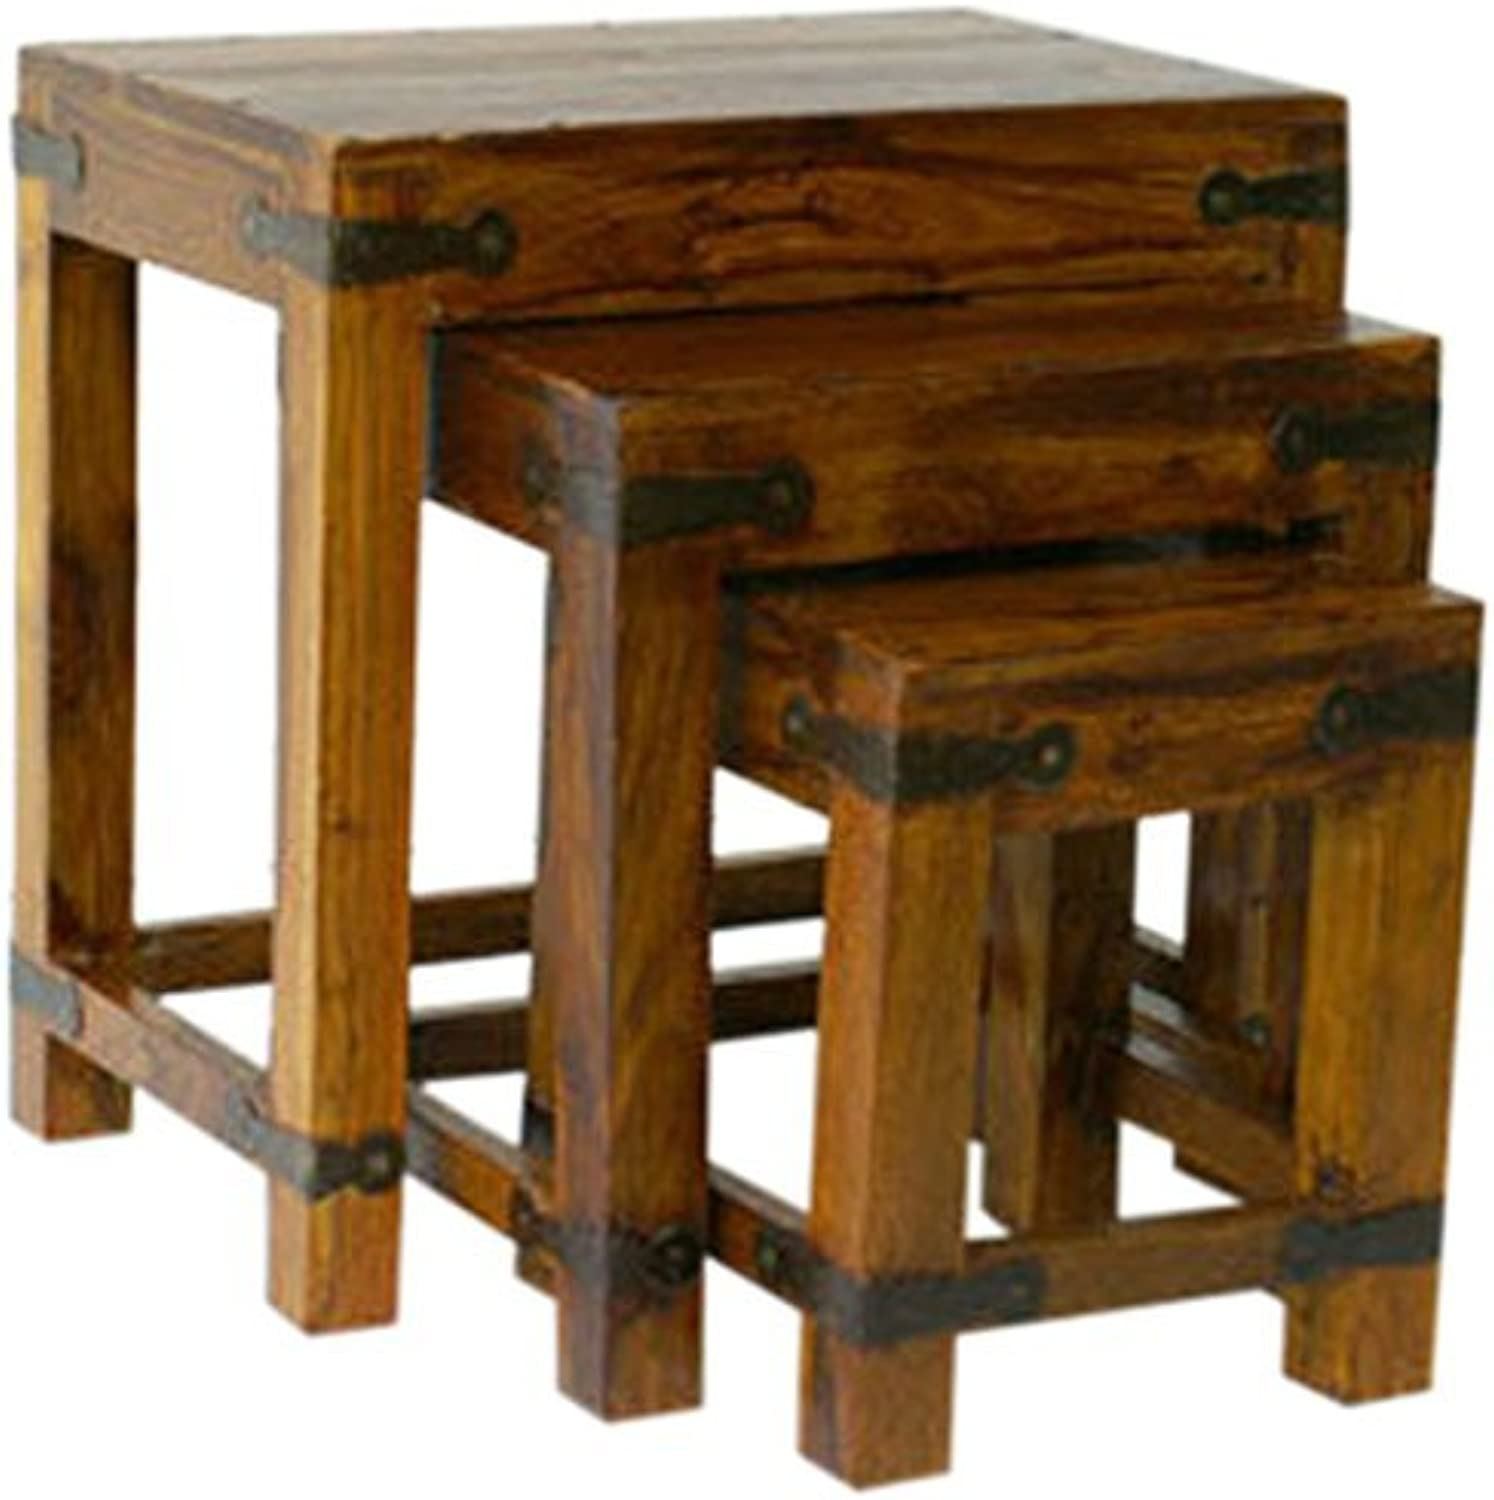 Mercers Furniture Indian Jali Refectory Nest of Tables - Indian pinkwood